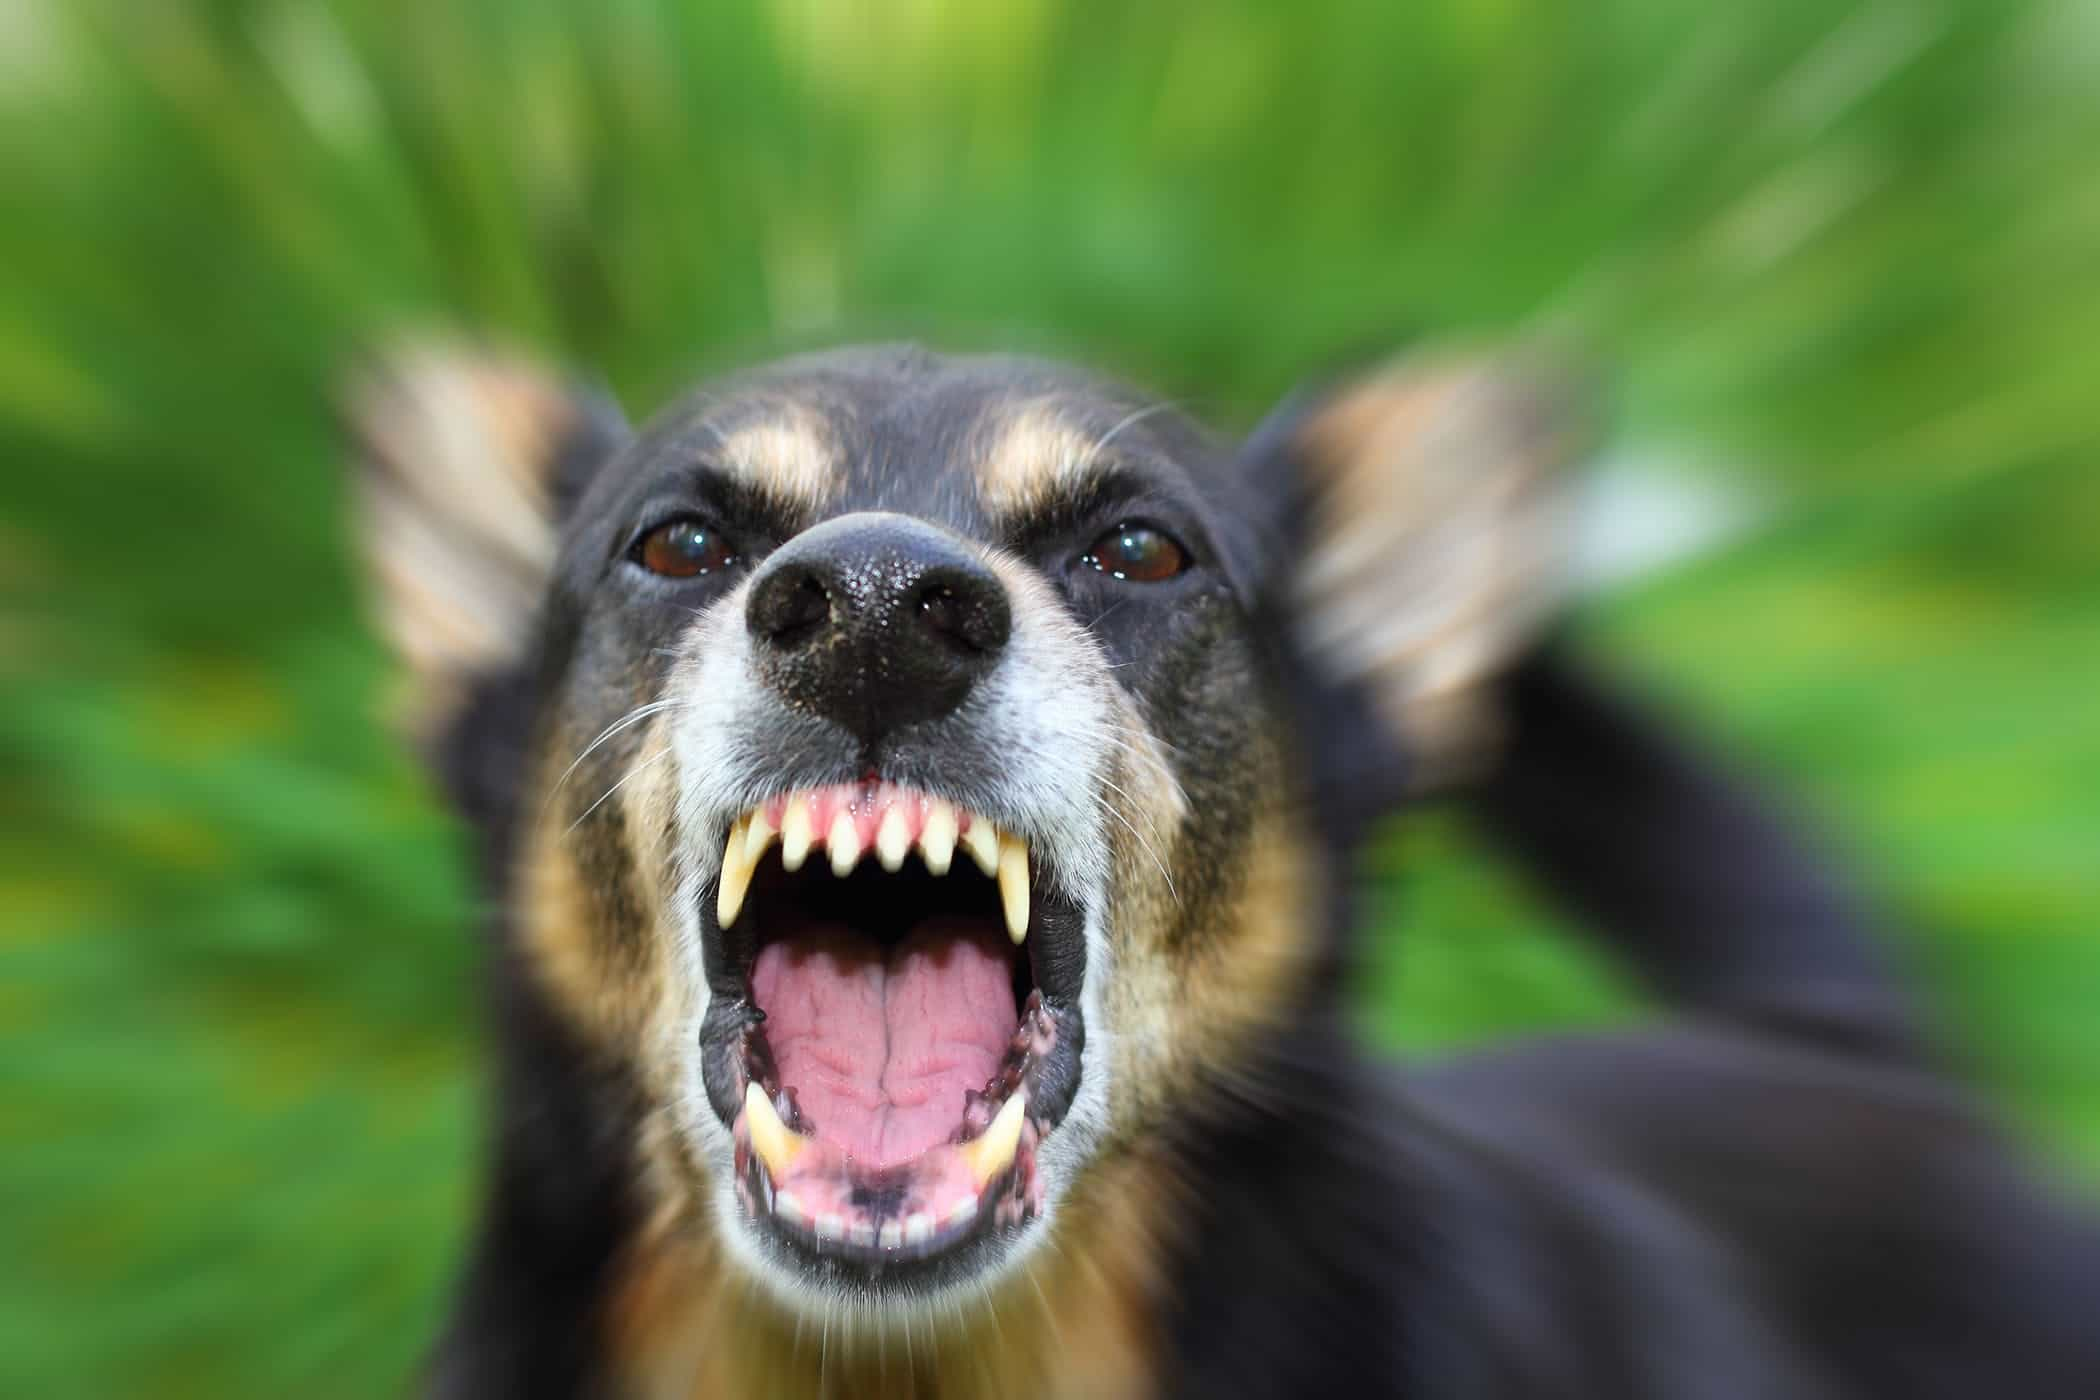 The rabies vaccination reduces the risk of their dog contracting the often fatal disease.